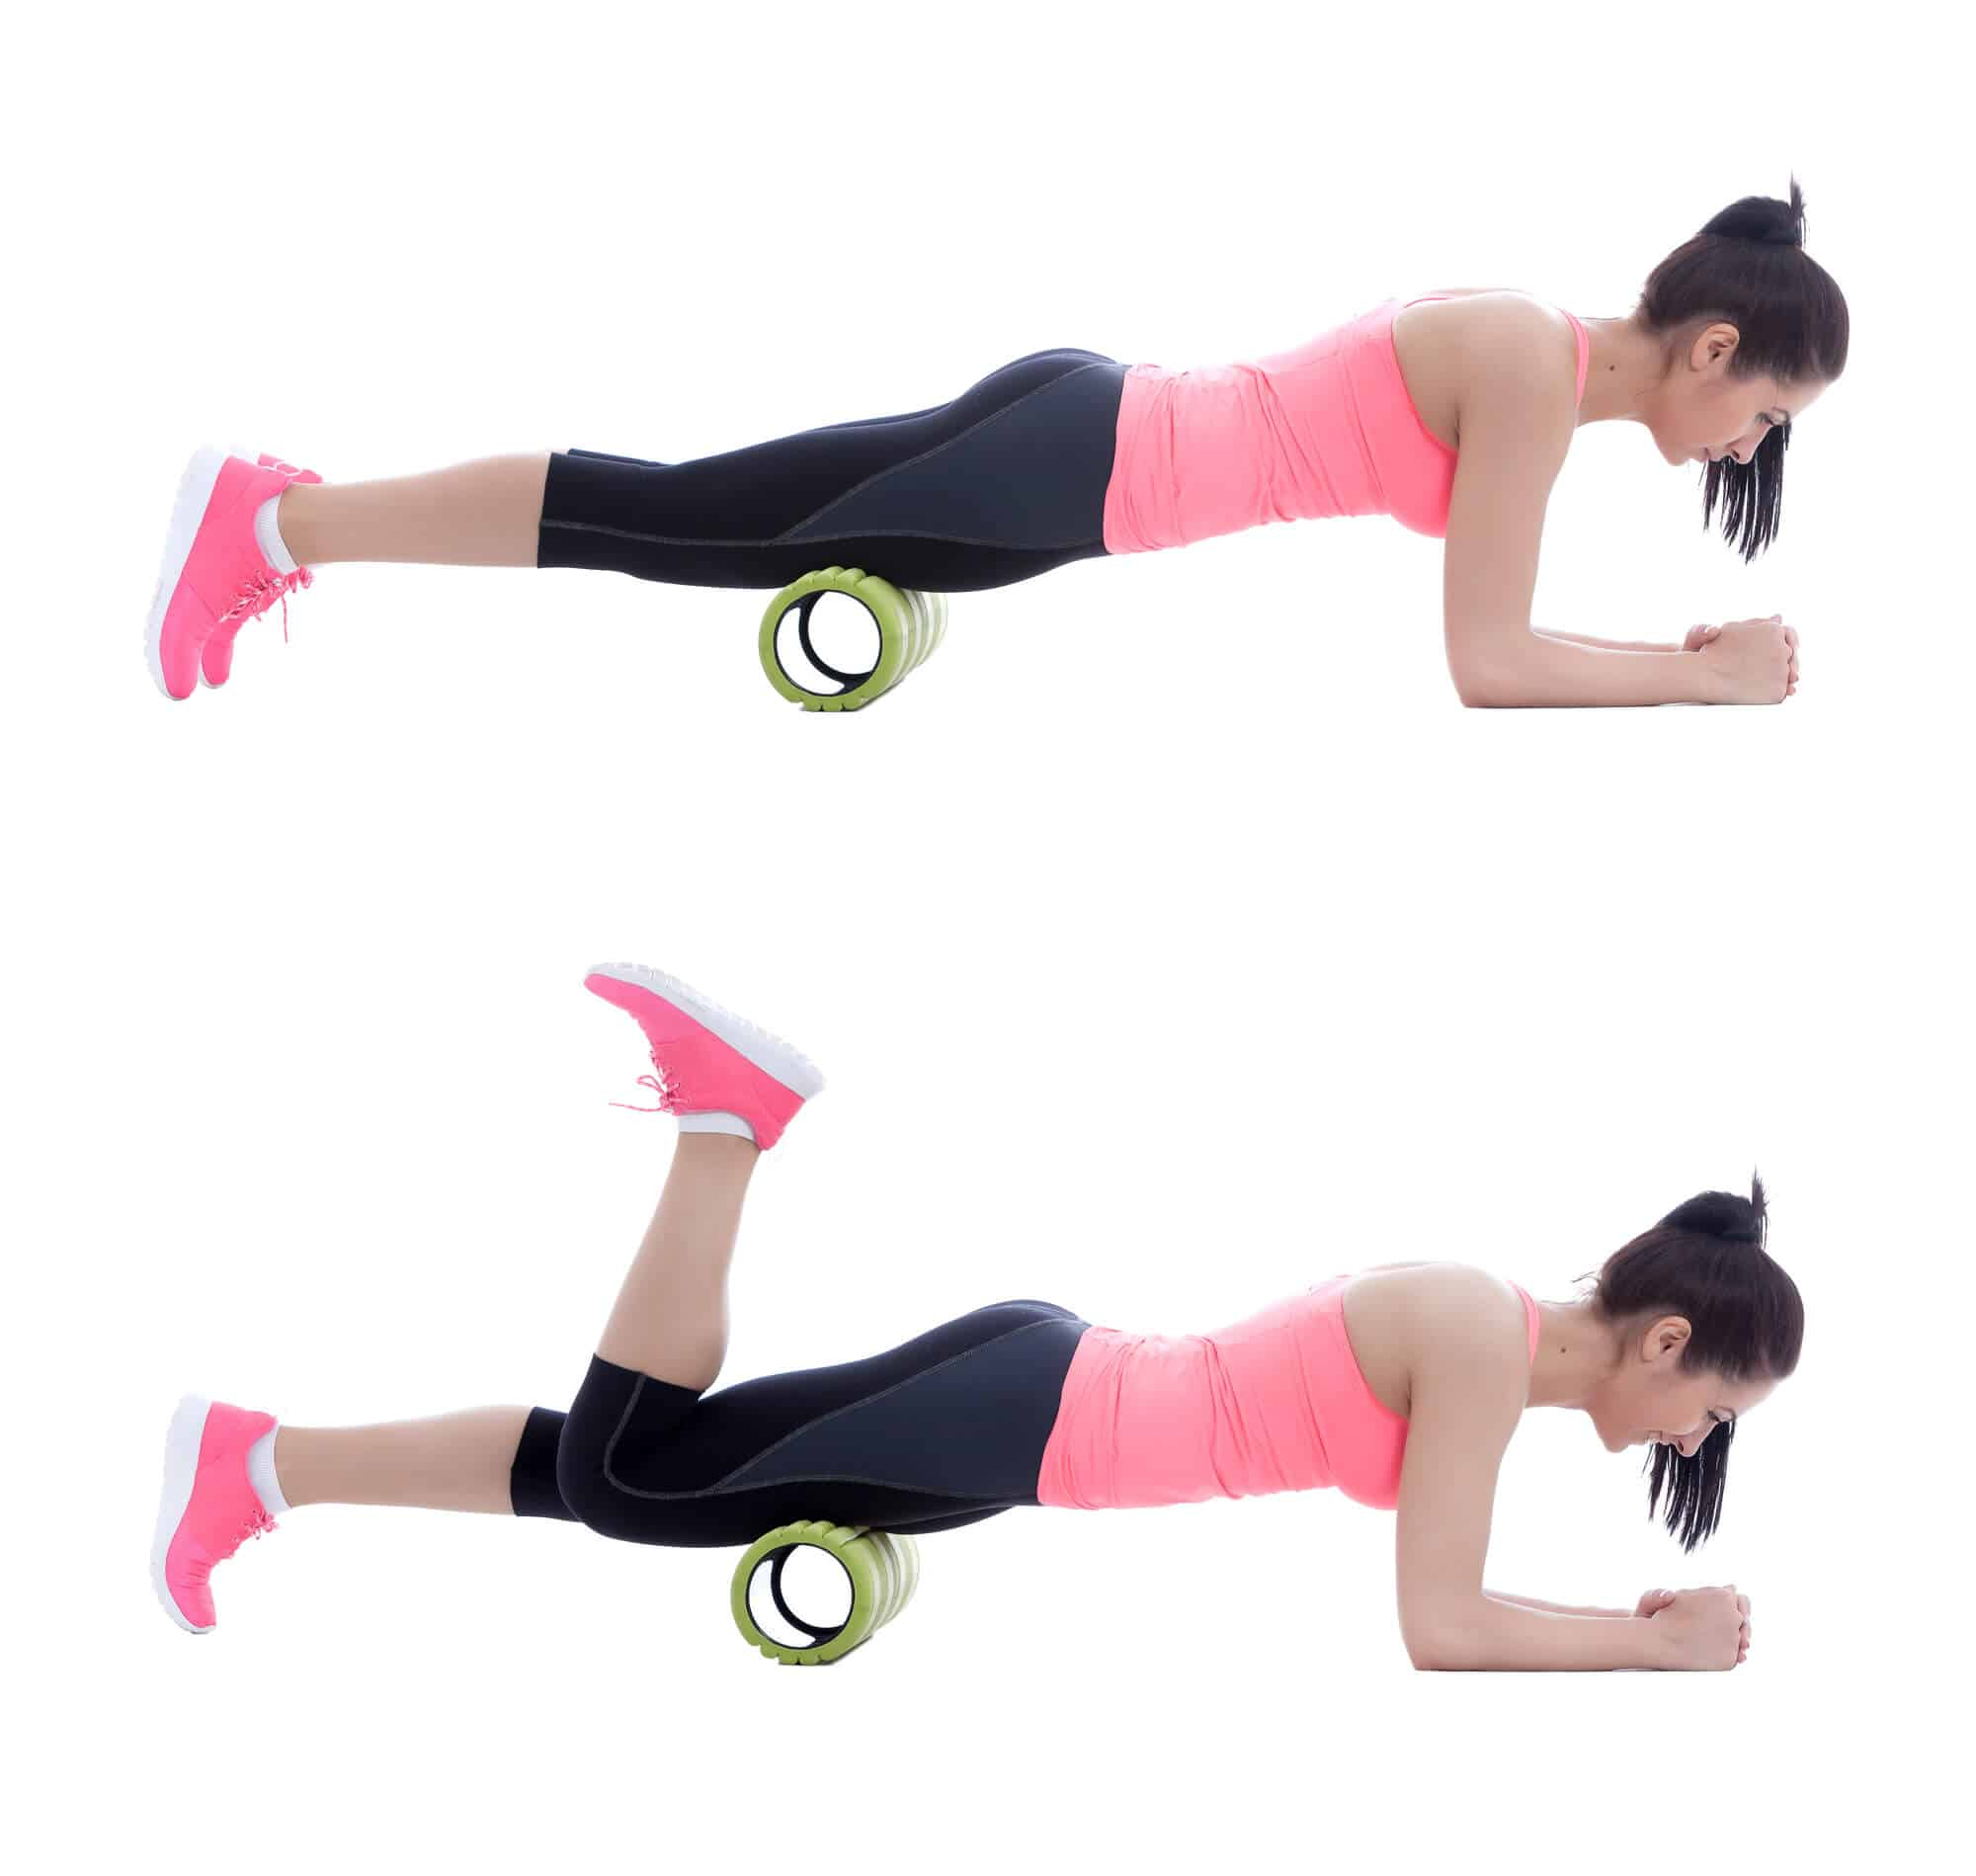 how to relieve sore muscles after workout. How to foam roll and the best foam roller exercises for legs